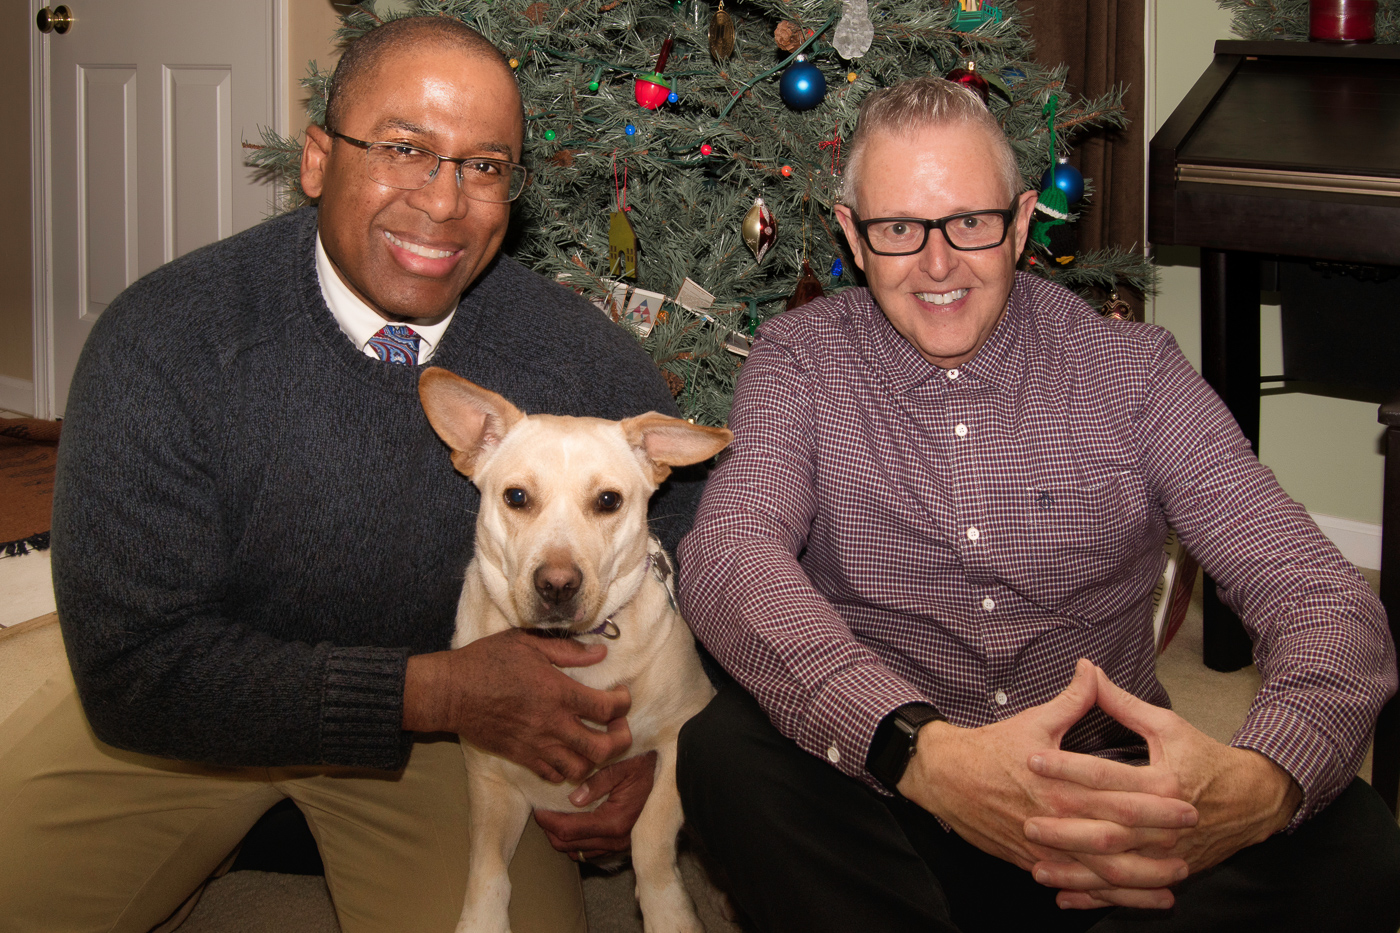 Have a MERRY CHRISTMAS and a HAPPY new year!  From Tony, Cookie, and Greg.